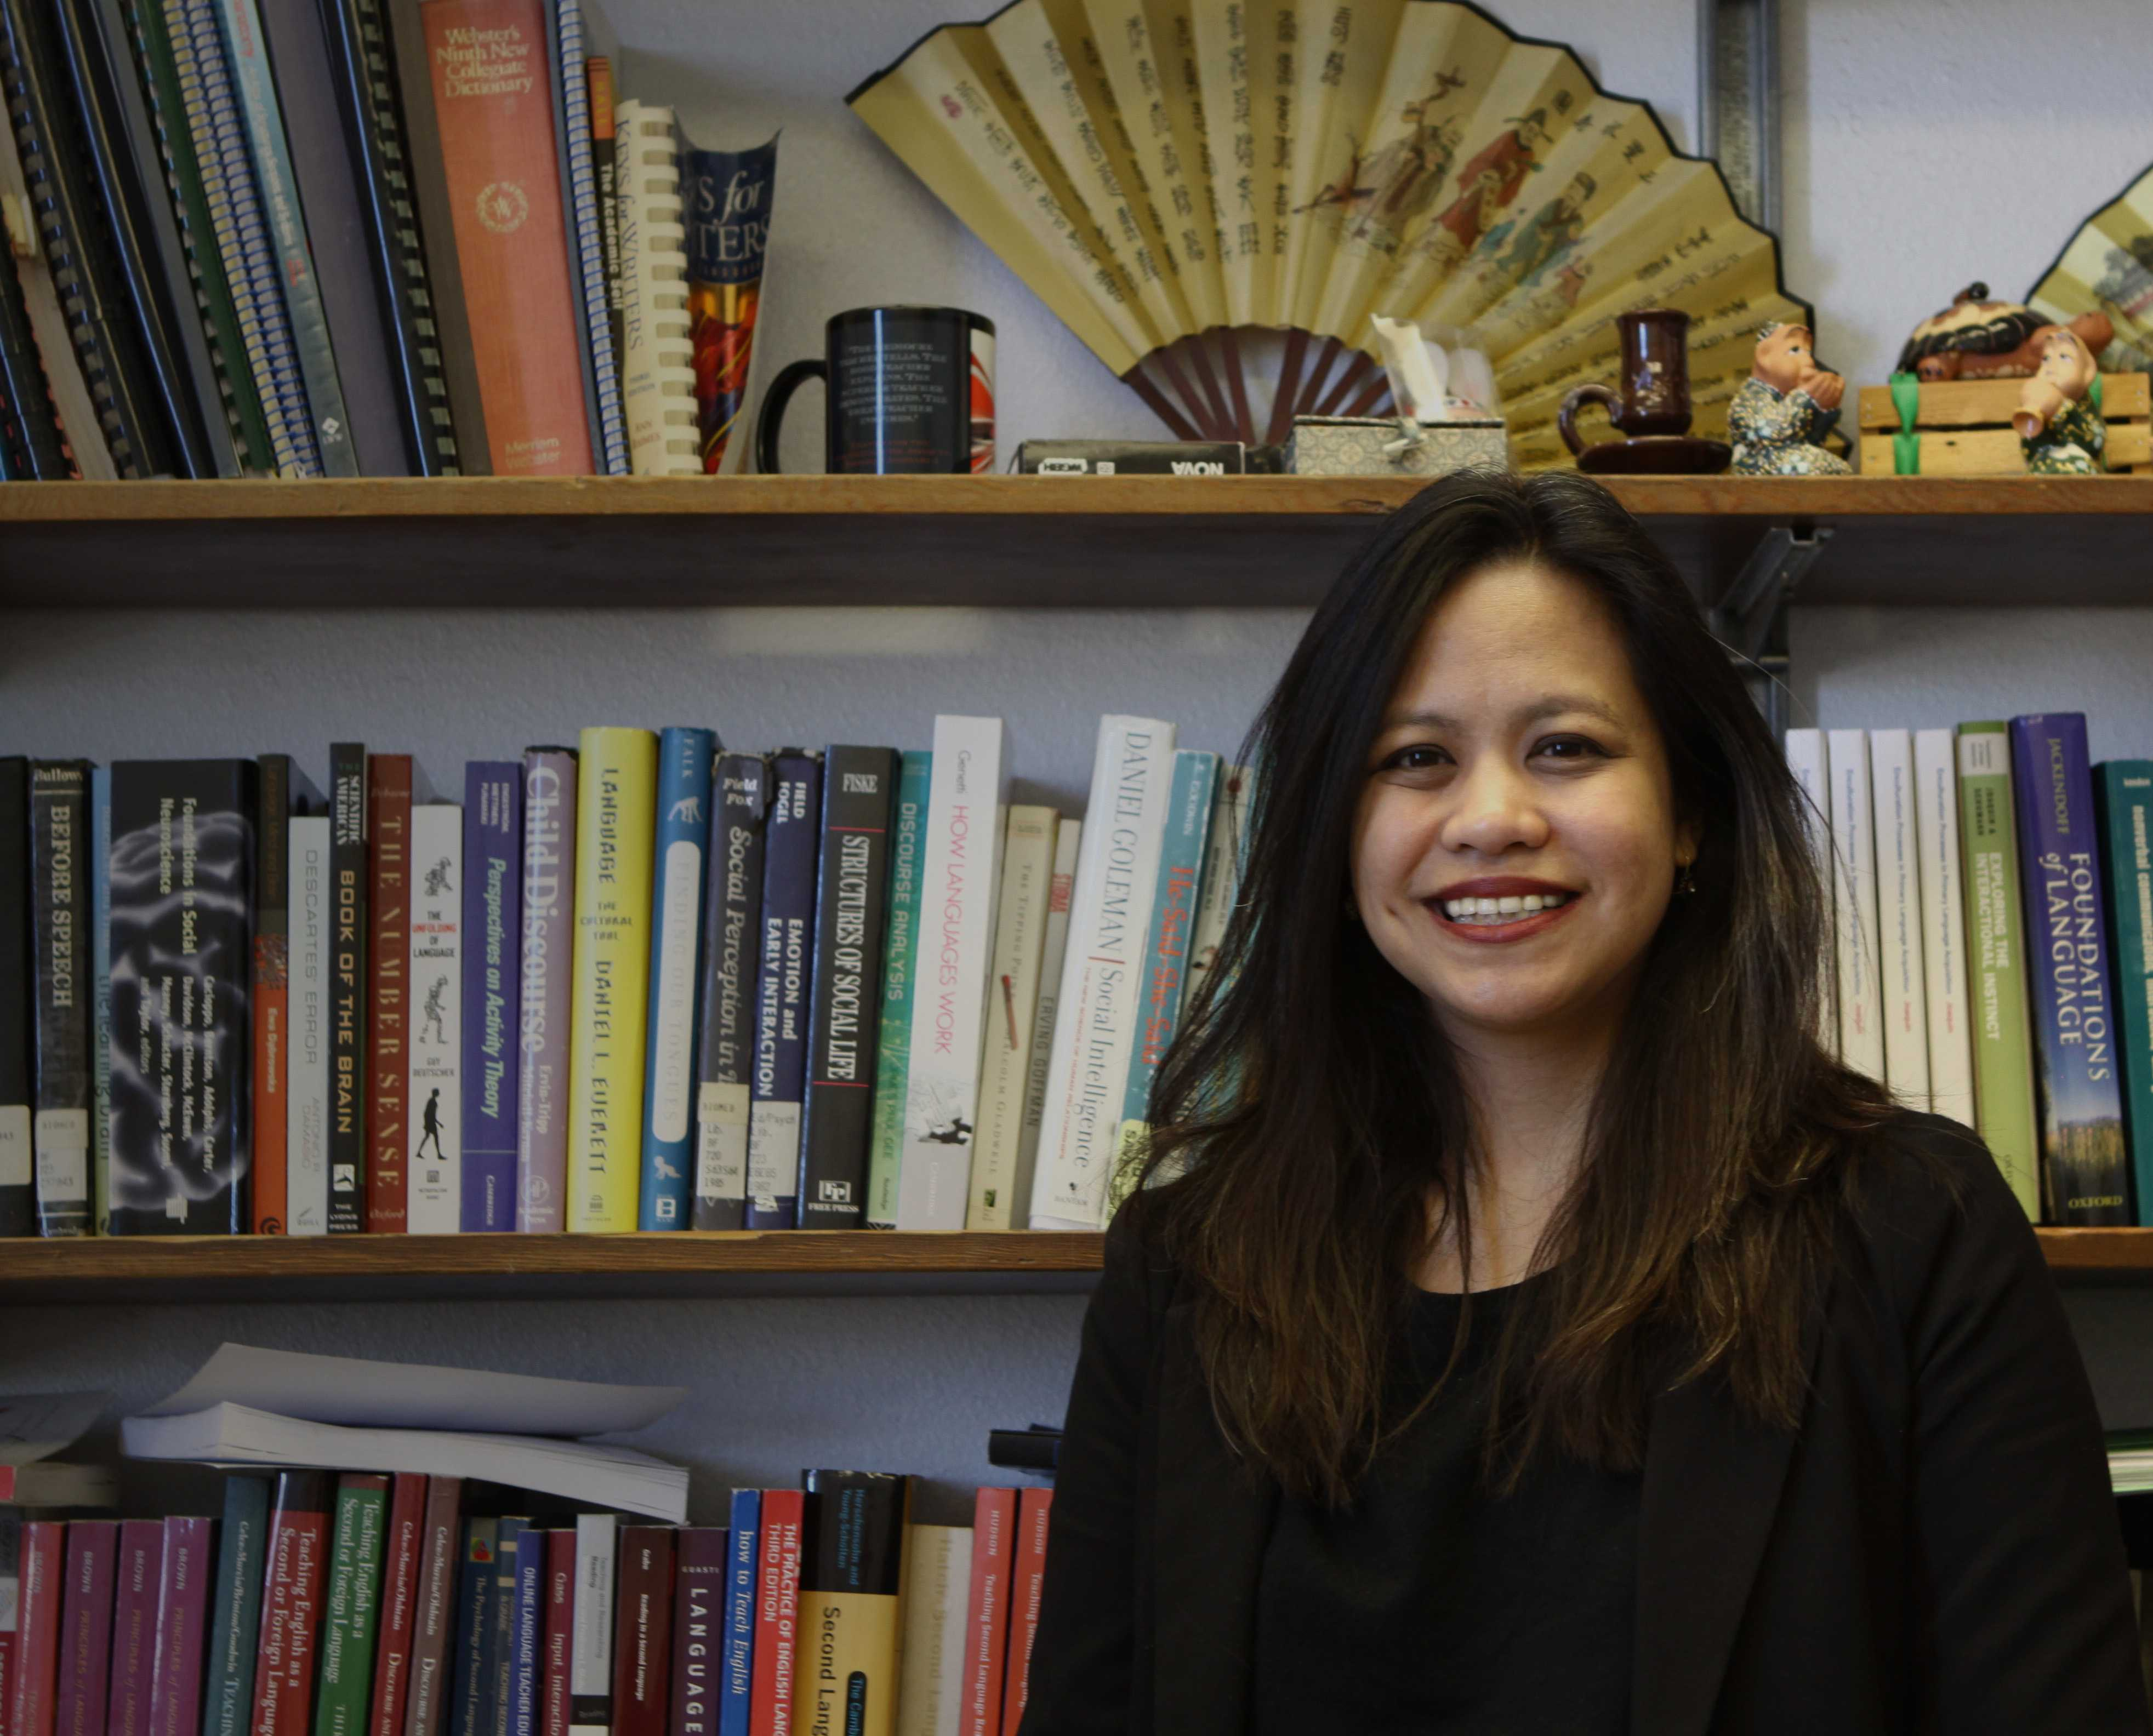 Anna Joaquin has published several books and articles about the process of learning languages, and has taught English as a Second Language at various institutions of higher education including UCLA, USC, and Los Angeles City College. Anne Christensen /Contributor.